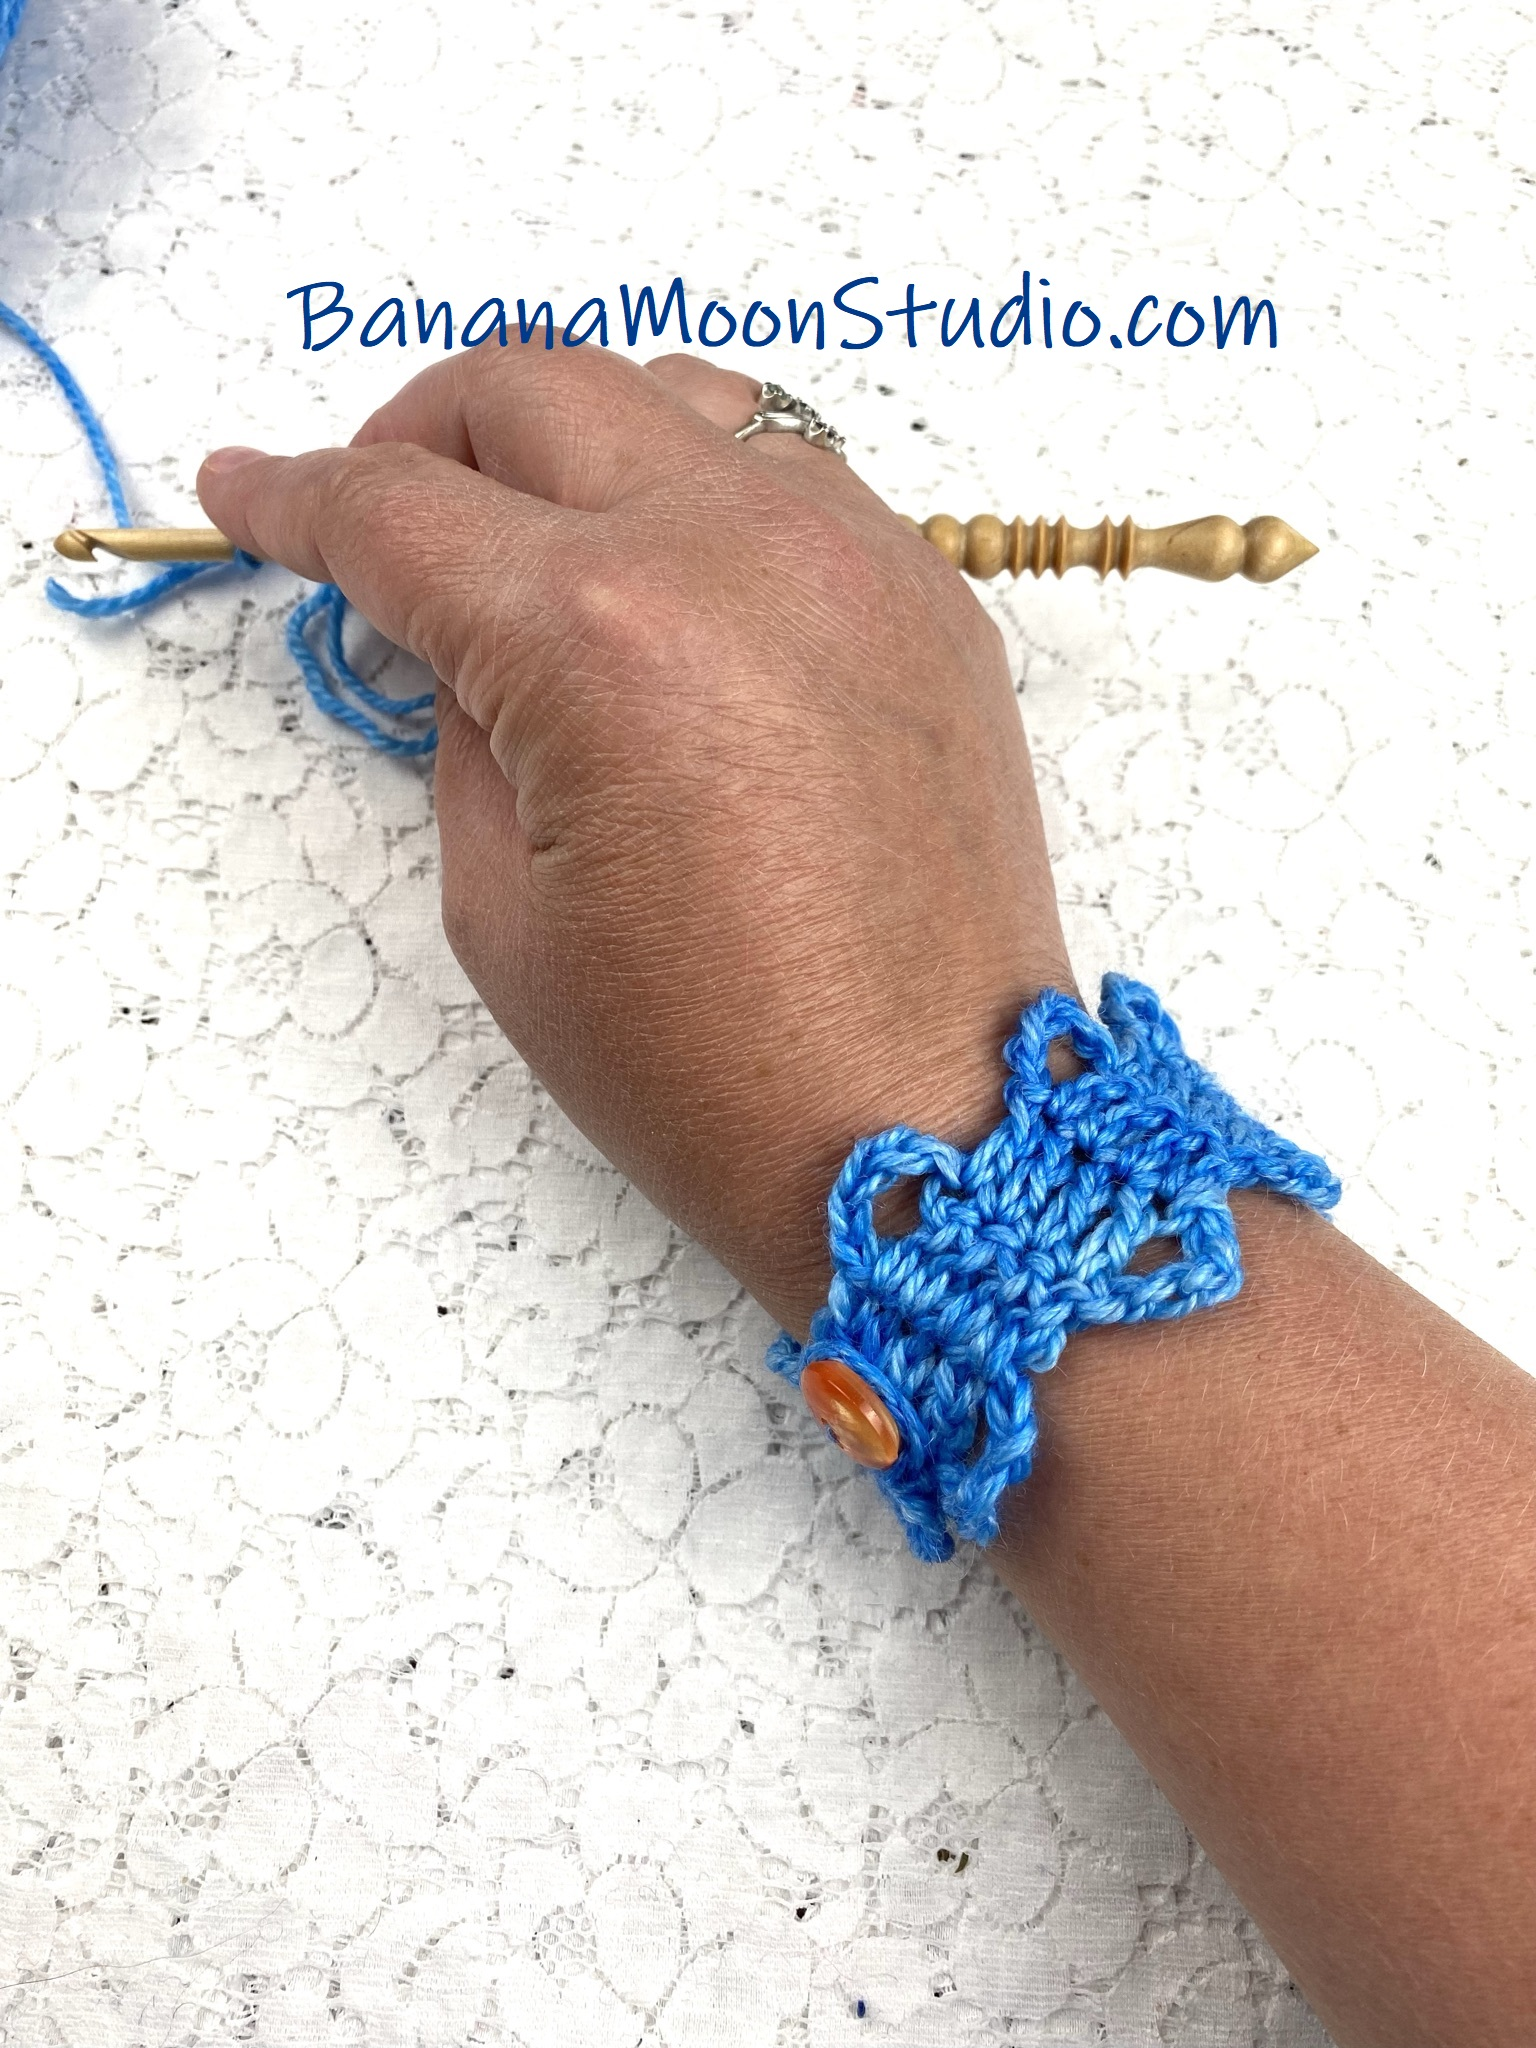 Hand and forearm wearing a blue crochet bracelet on a white lace background. Text reads: BananaMoonStudio.com